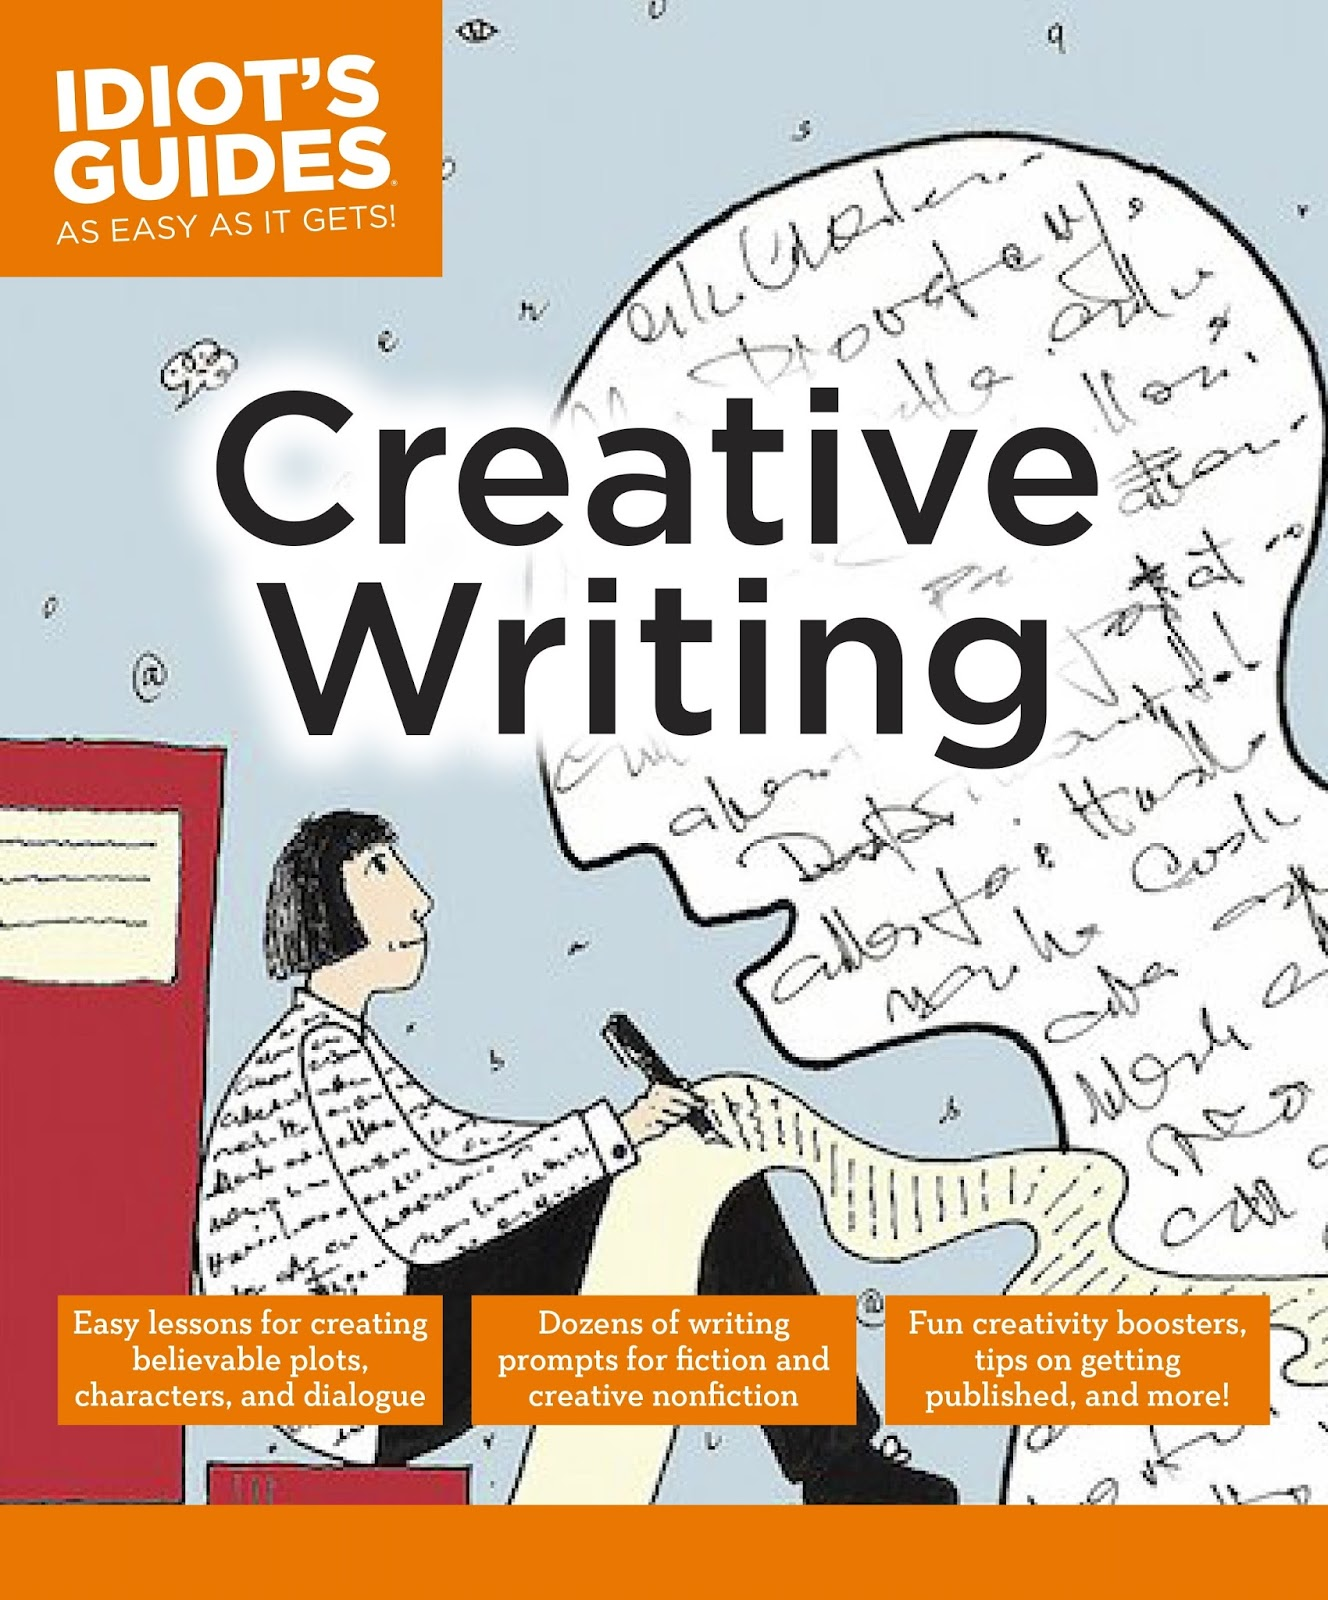 creative writing now types of novels Bie started writing his essay already :'( long distance relationship, again snmp protocol research papers useful vocabulary for essay writing year 1 4 subjects to study, a cl project, an essay for english, a video to edit and a layout to draw --.